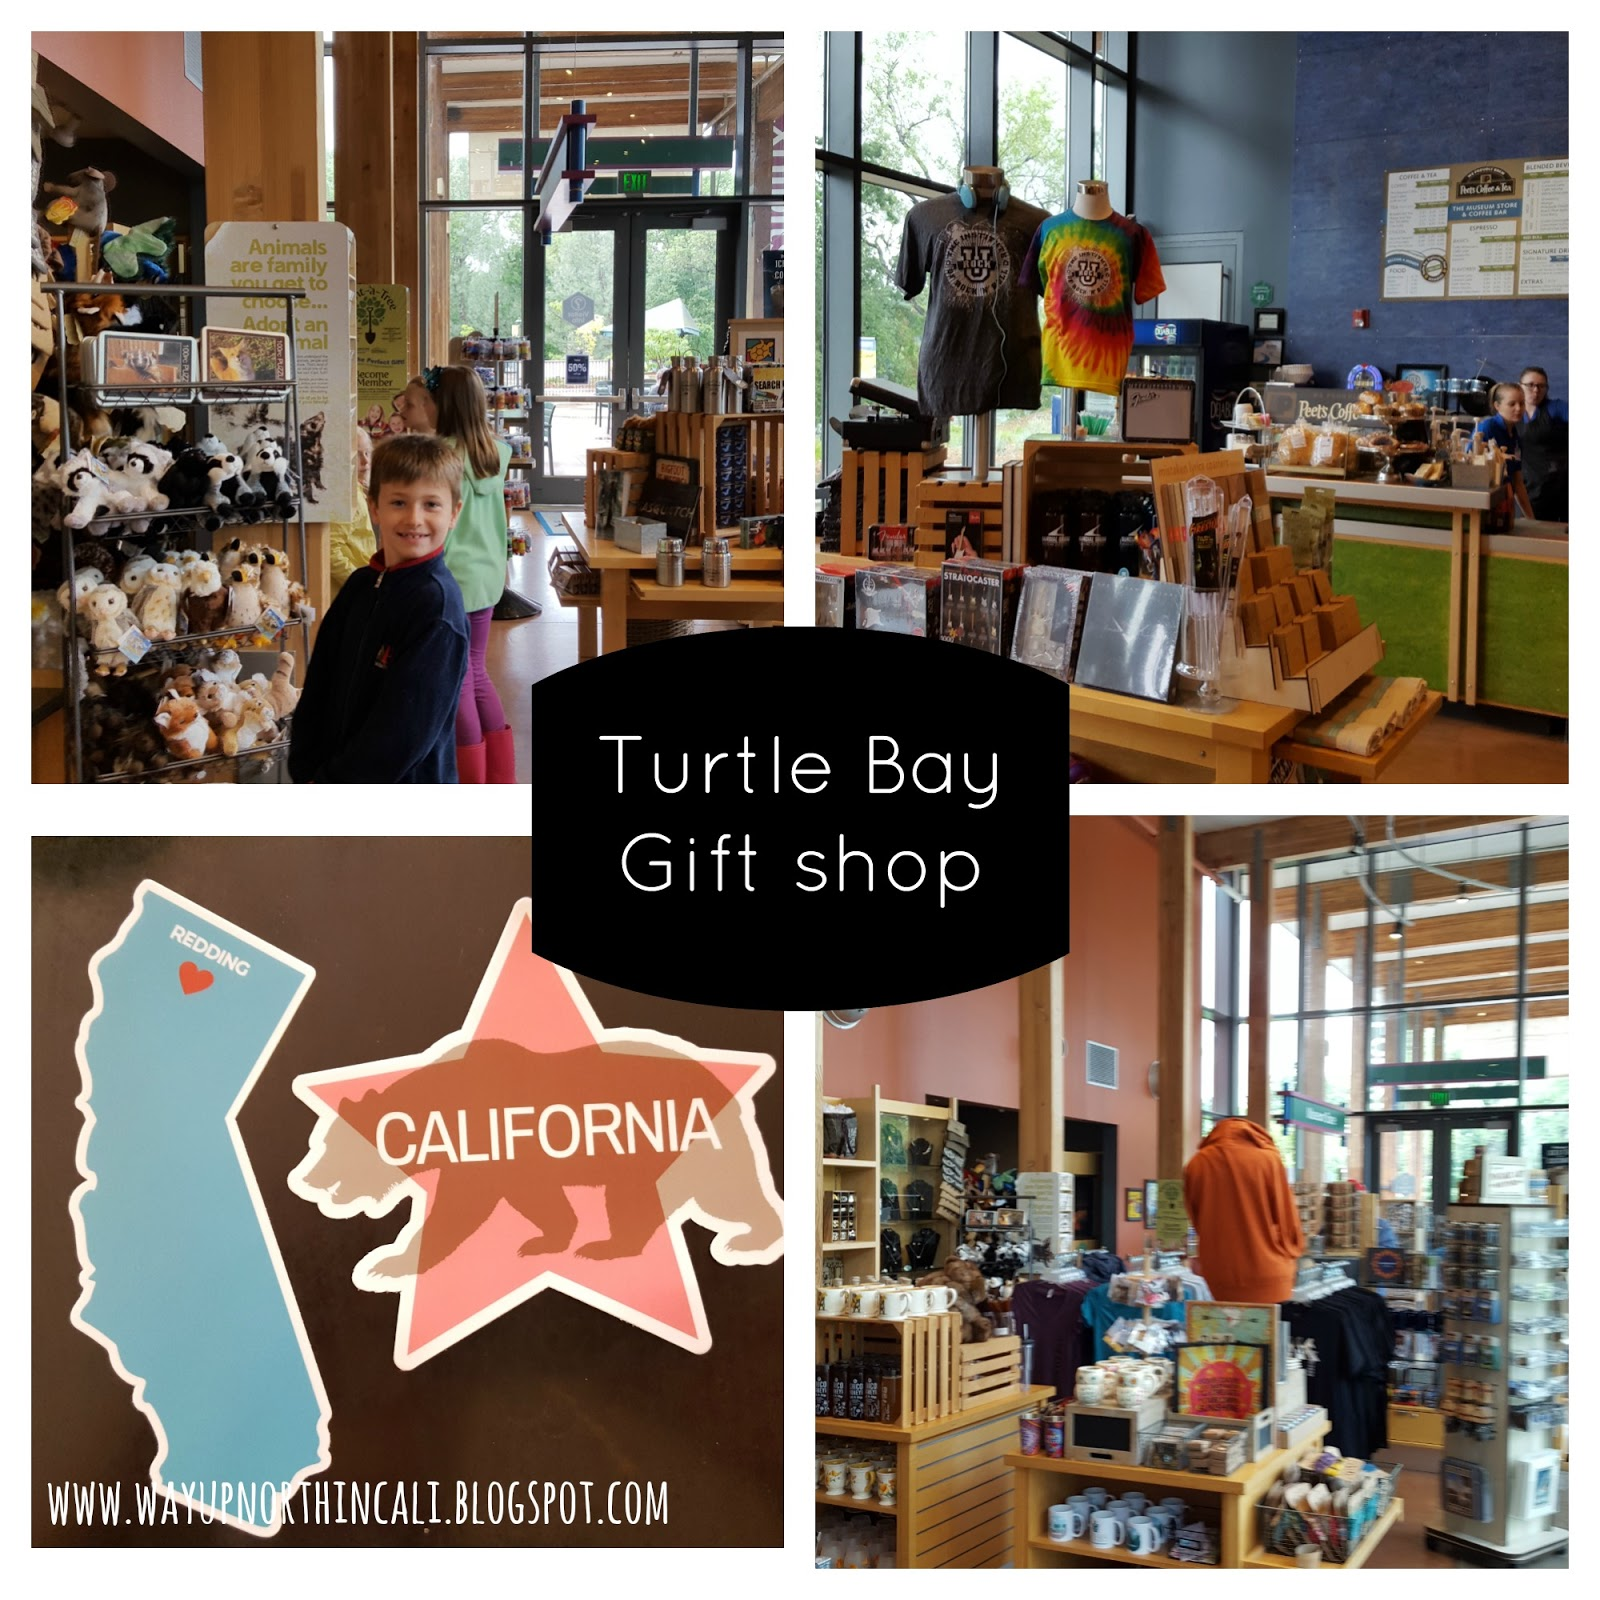 Way Up North In Cali A Look At Turtle Bay Museum Through